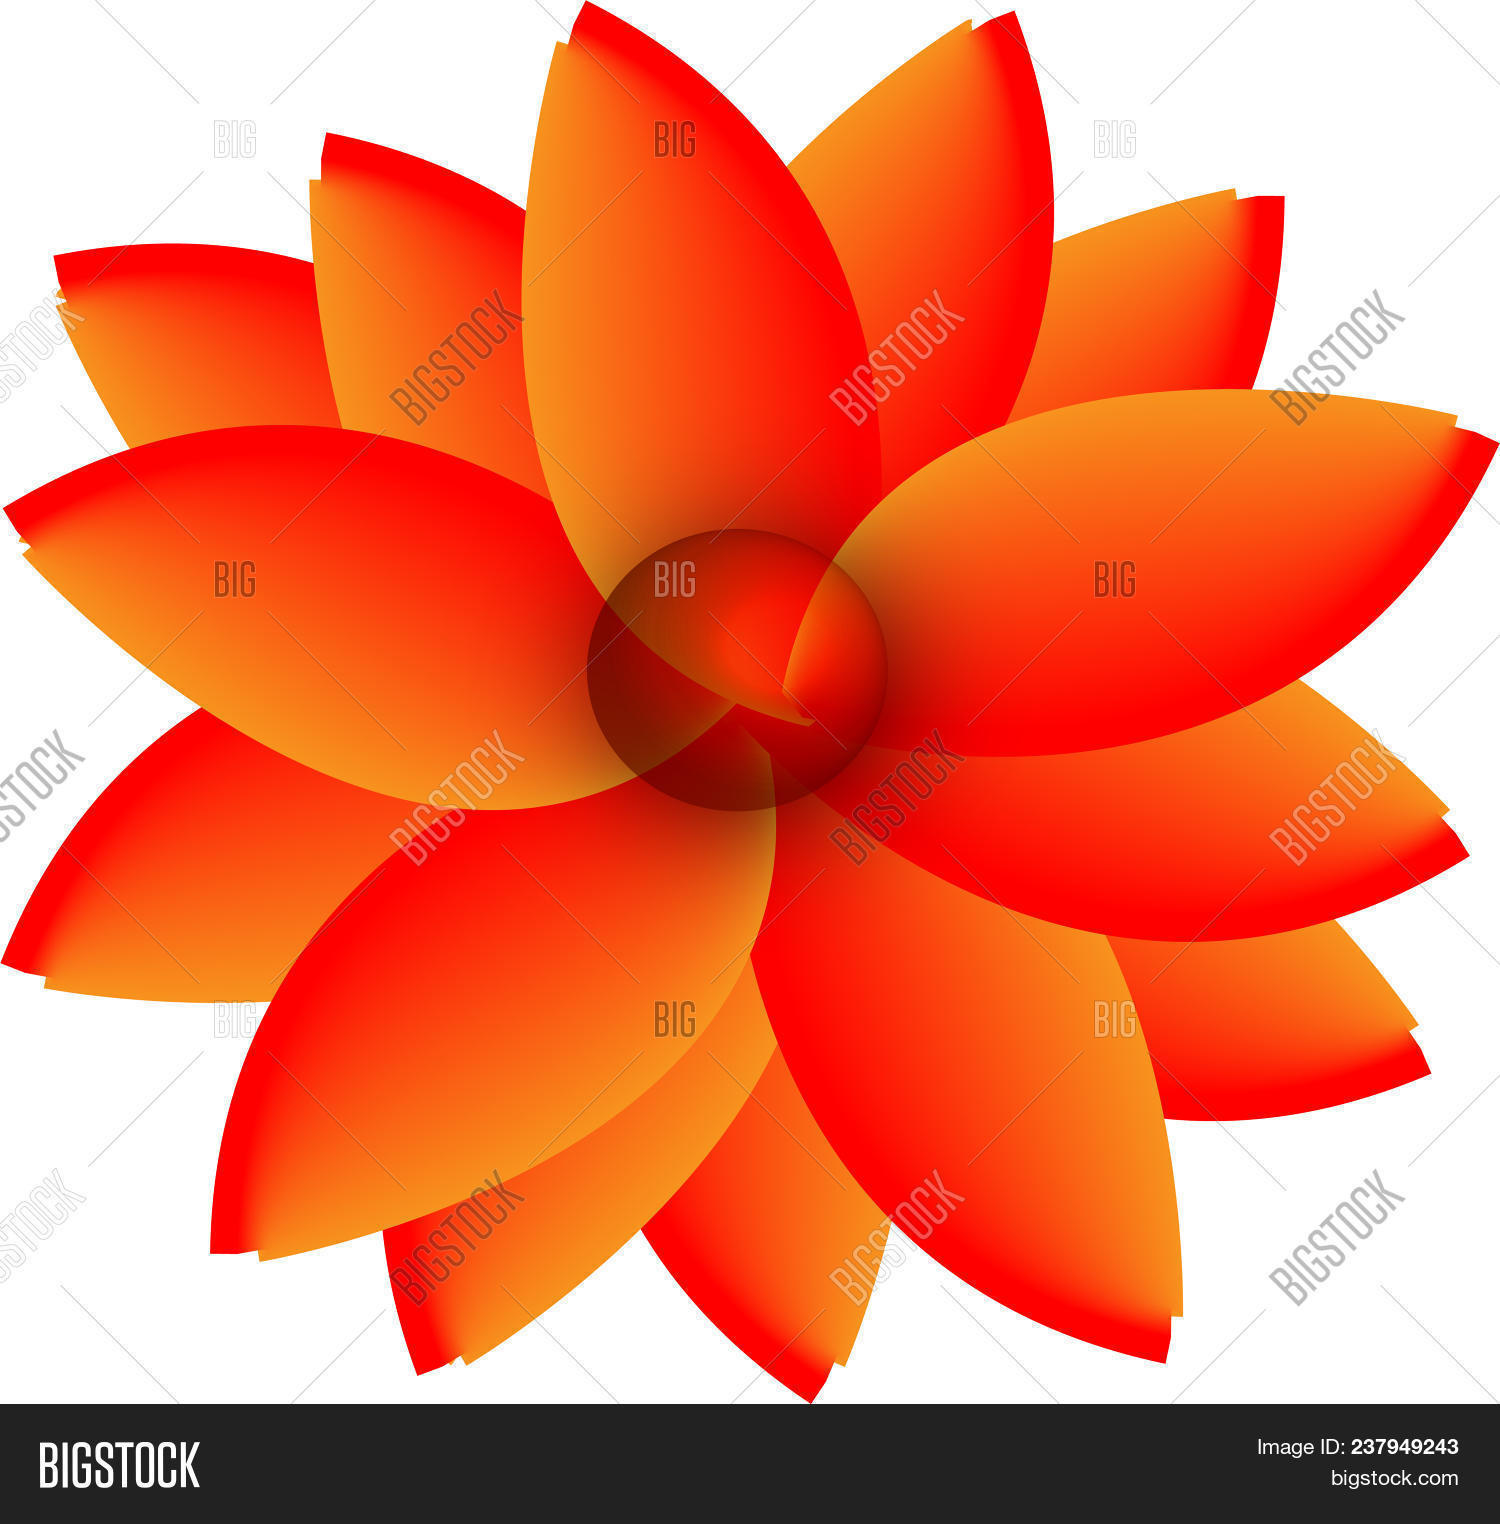 Red Yellow Flower Image Photo Free Trial Bigstock